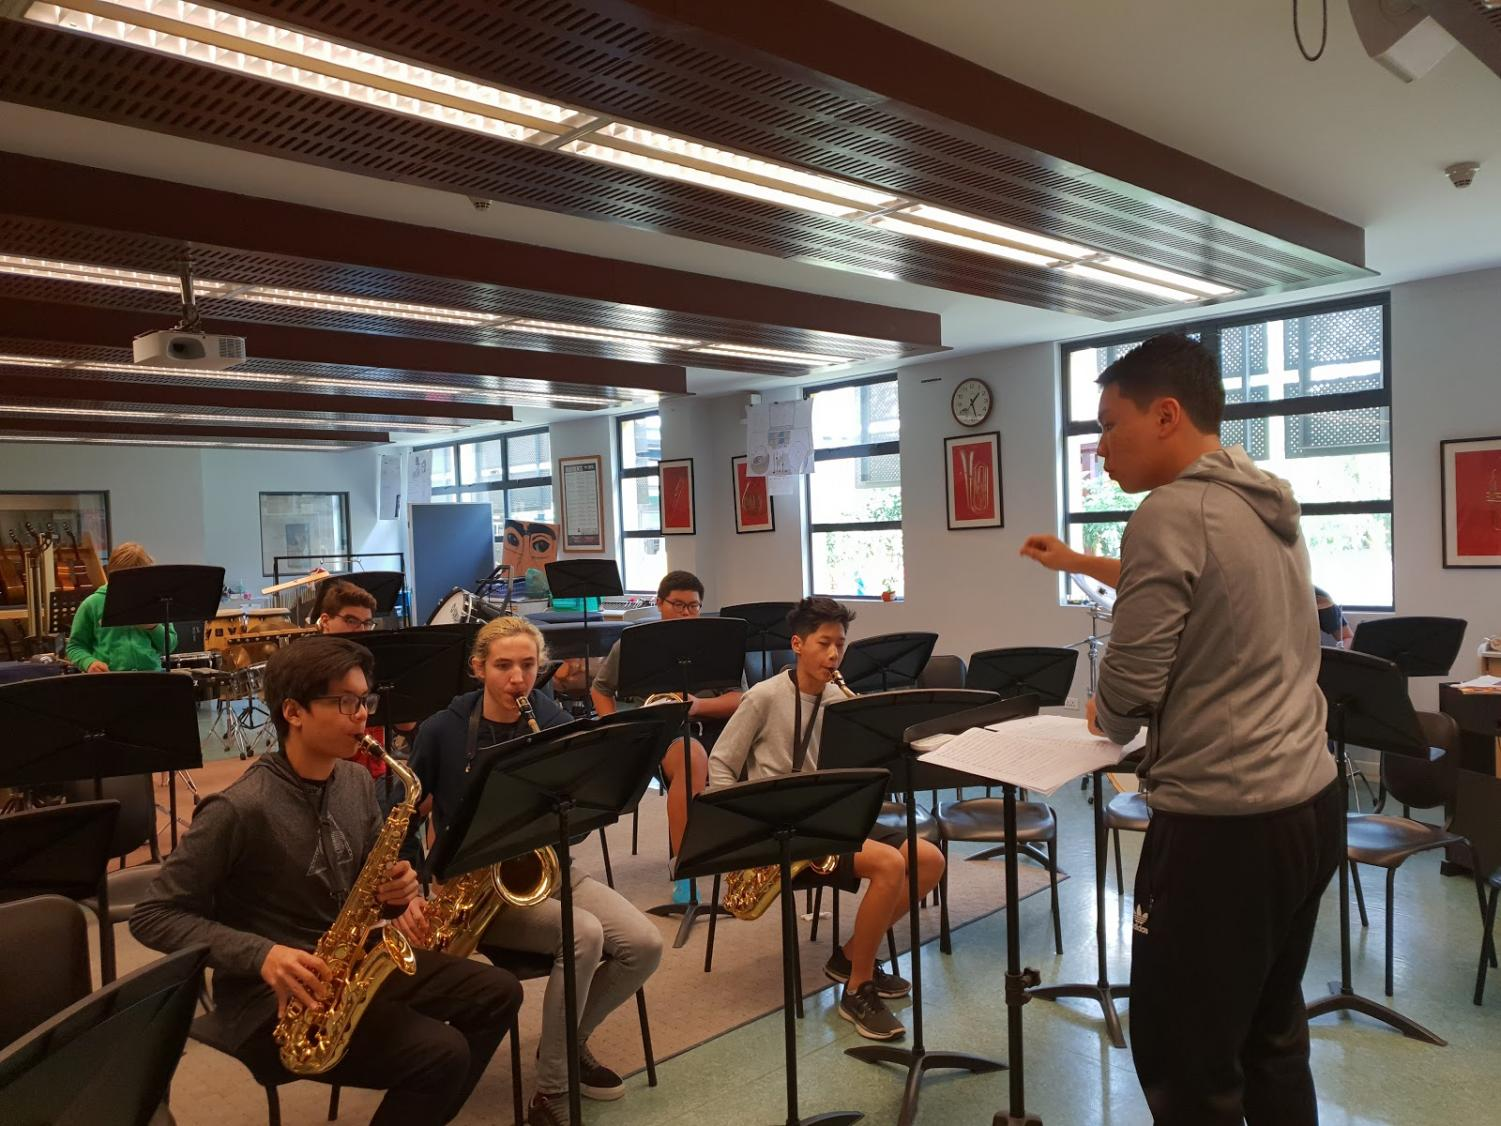 Student Lead Harmony: Students Form a Jazz Band